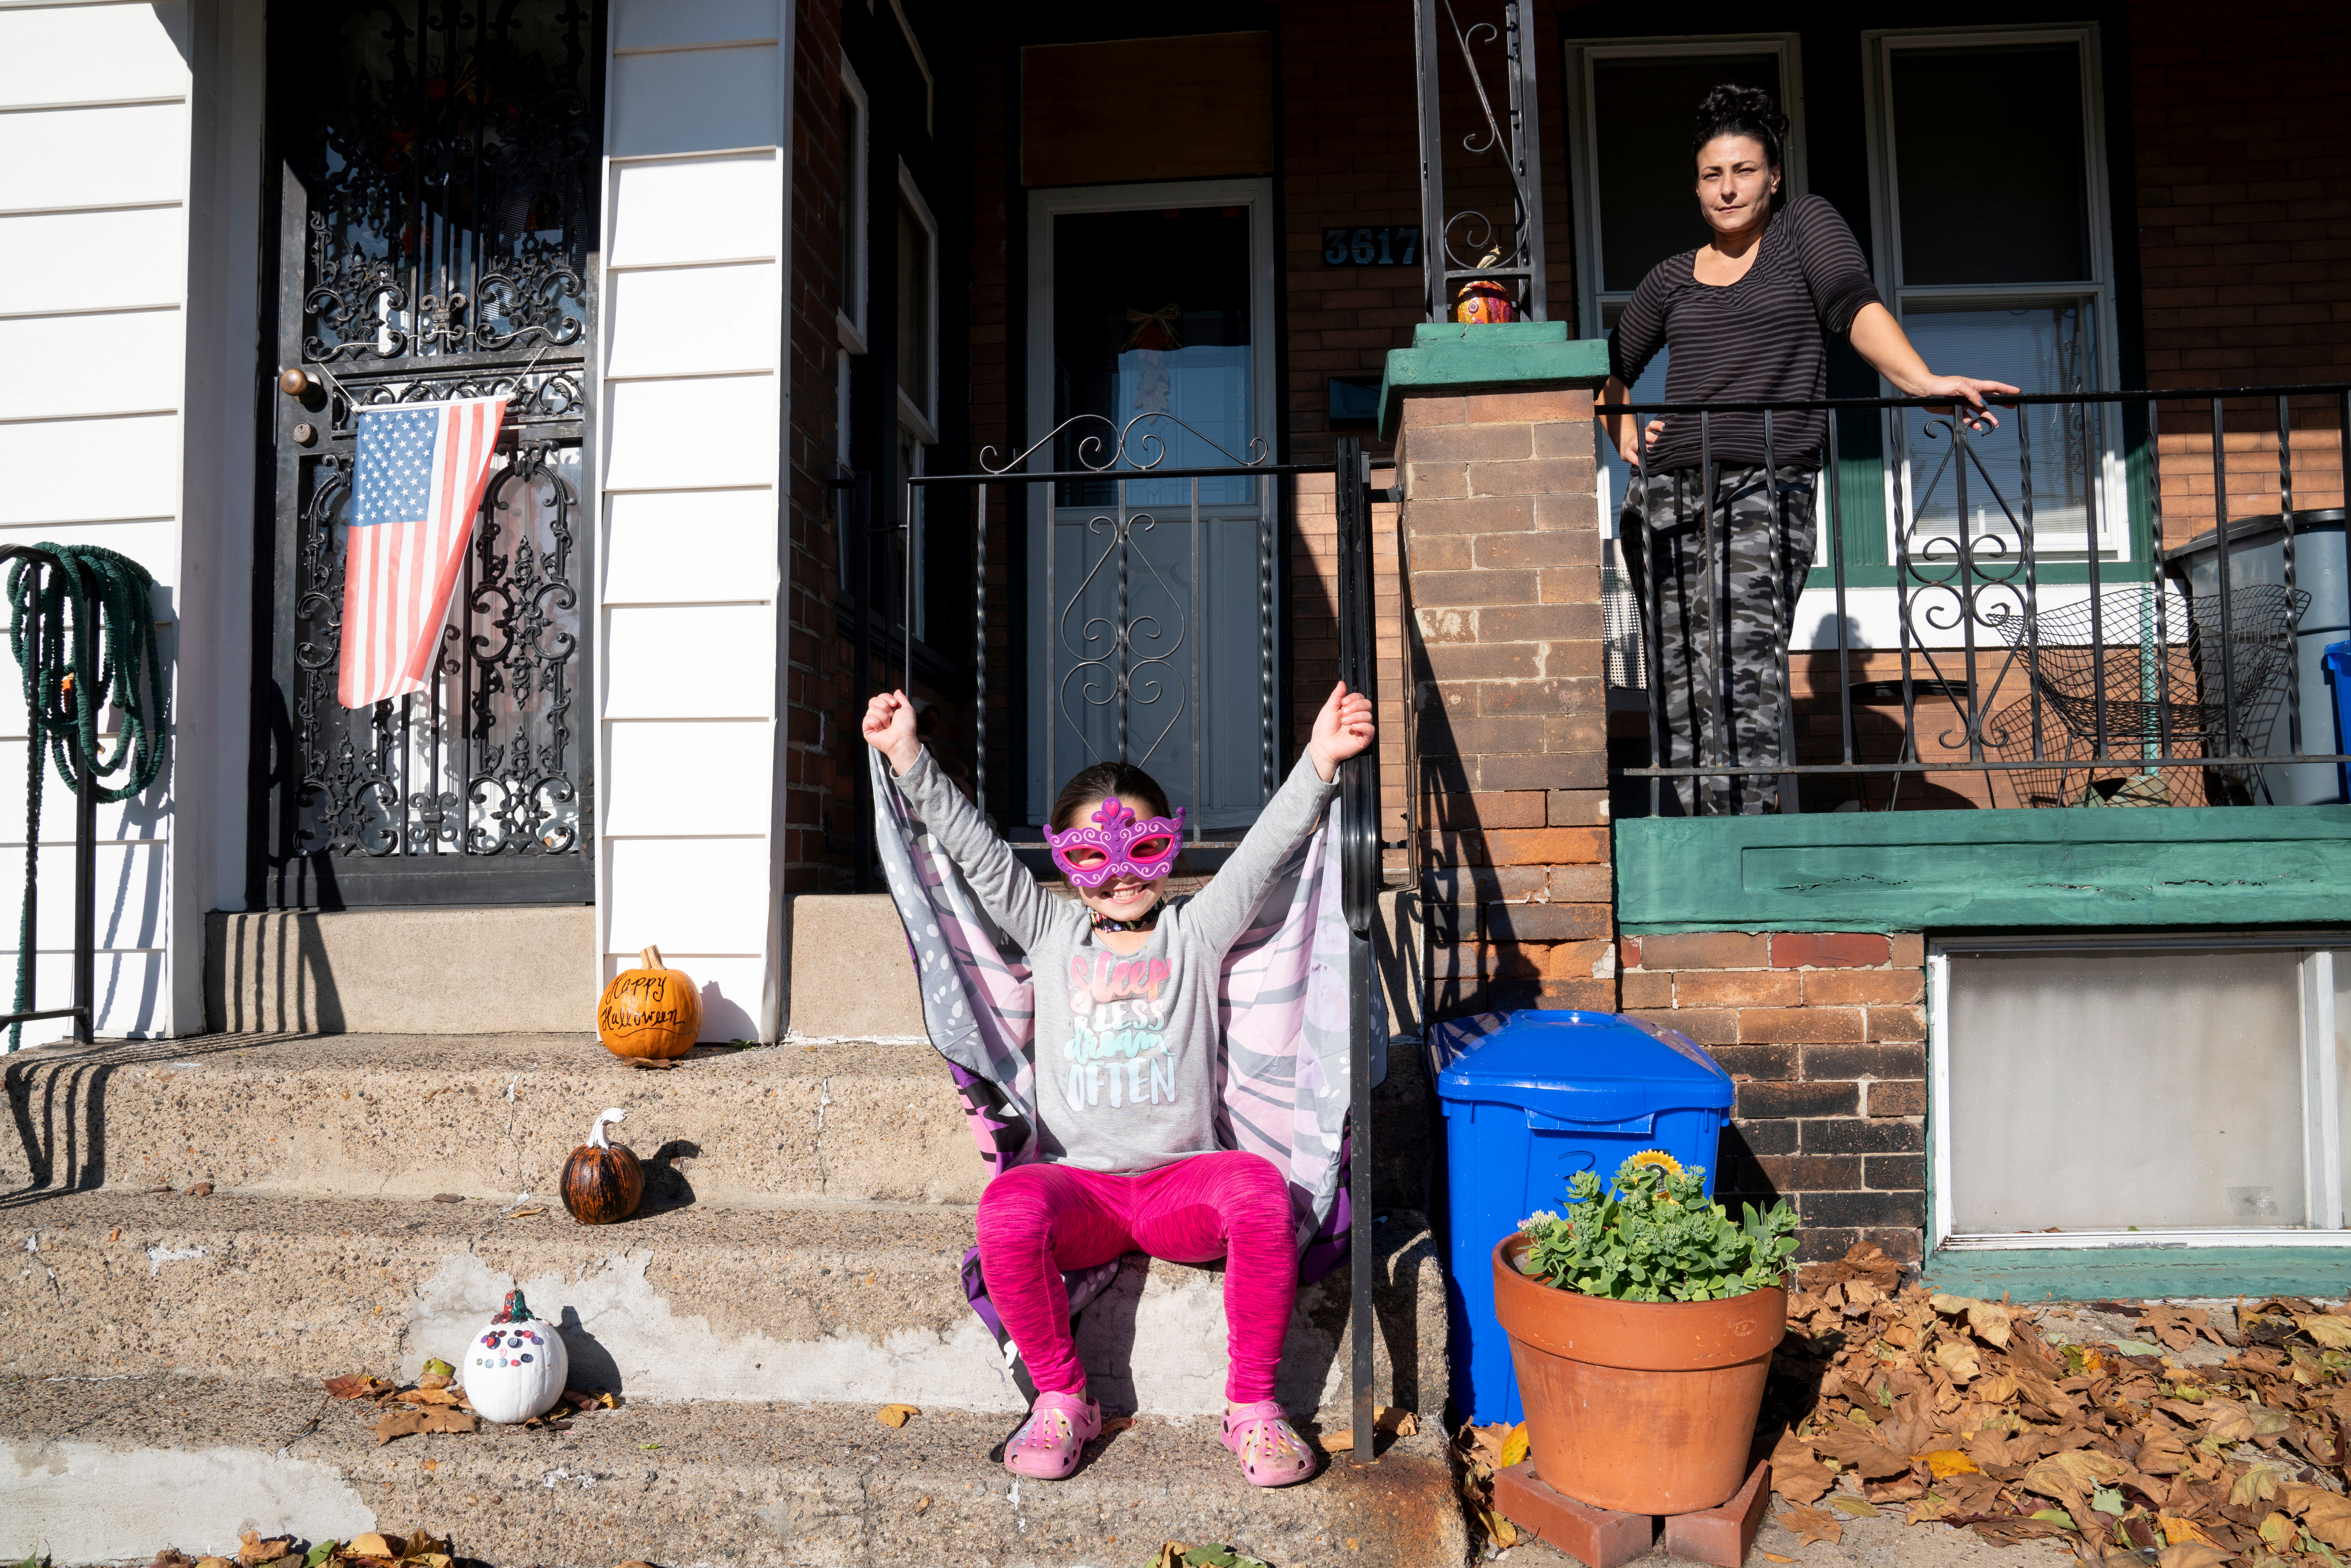 Jenny Snider, 39, and daughter Ellie Sagna, 7, pose for a photo in front of their house in Forgotten Bottom next to the PES Refinery in Philadelphia, Pennsylvania, U.S., November 2, 2020. REUTERS/Dane Rhys